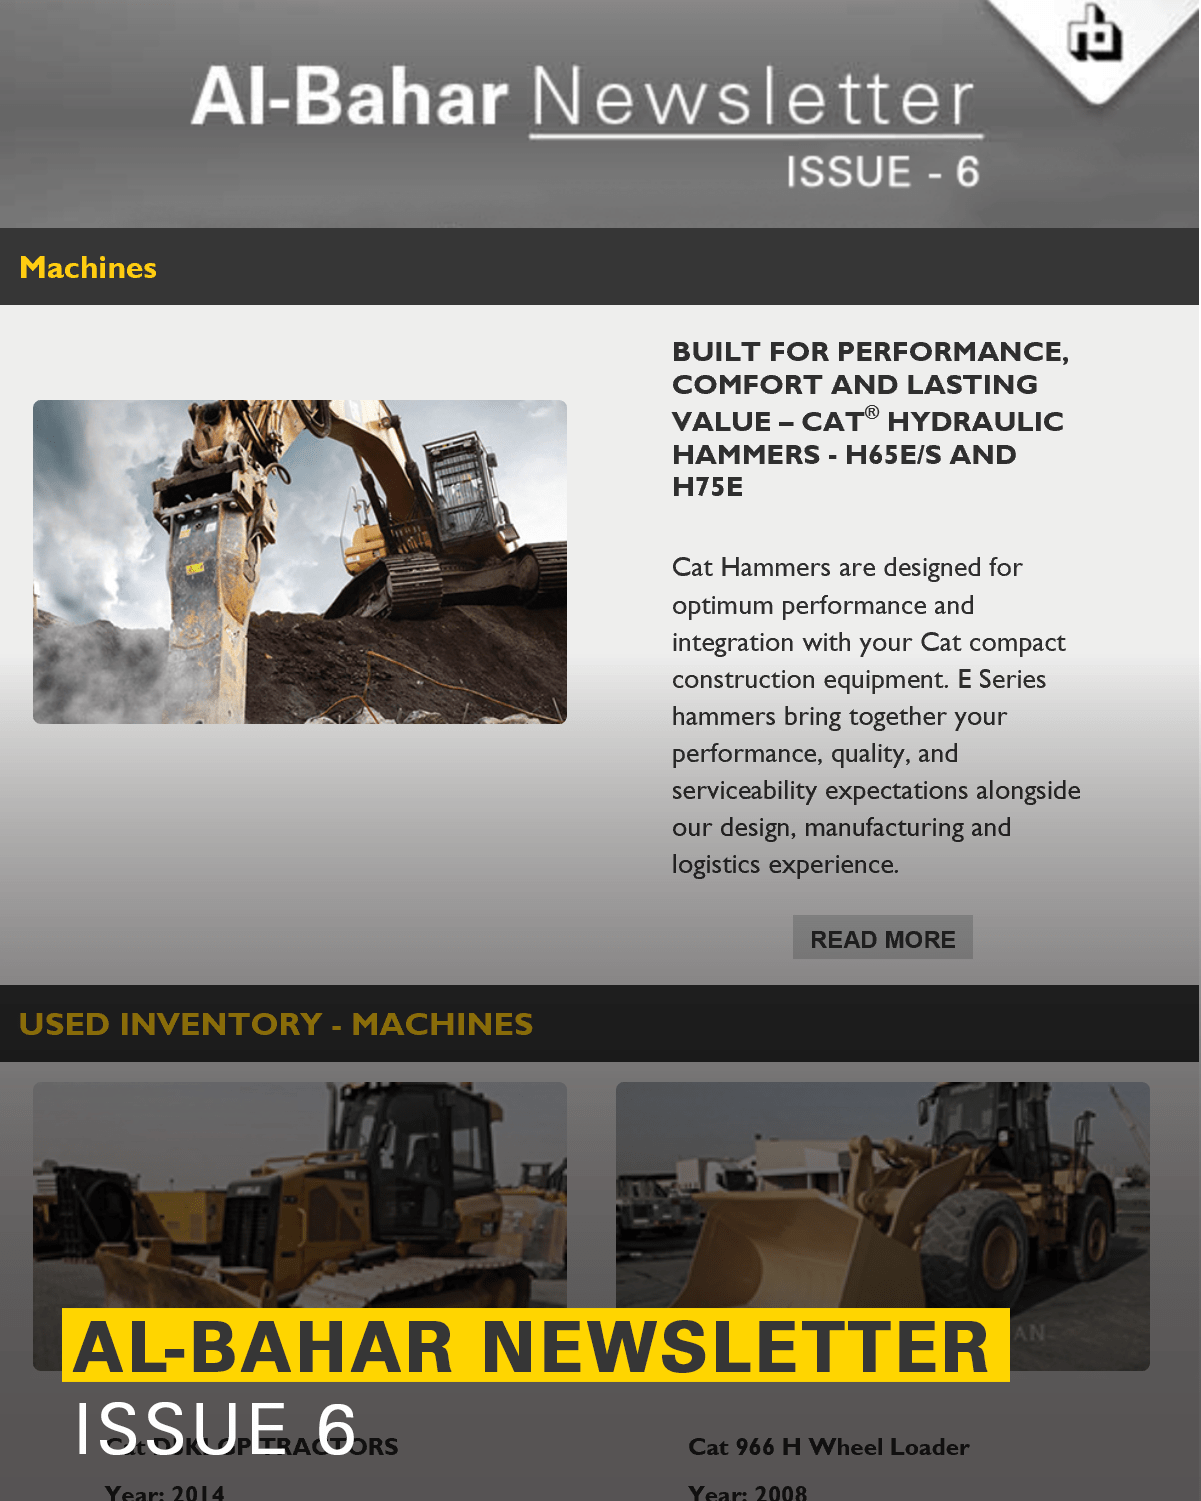 al-bahar-2017-newsletter-issue-6